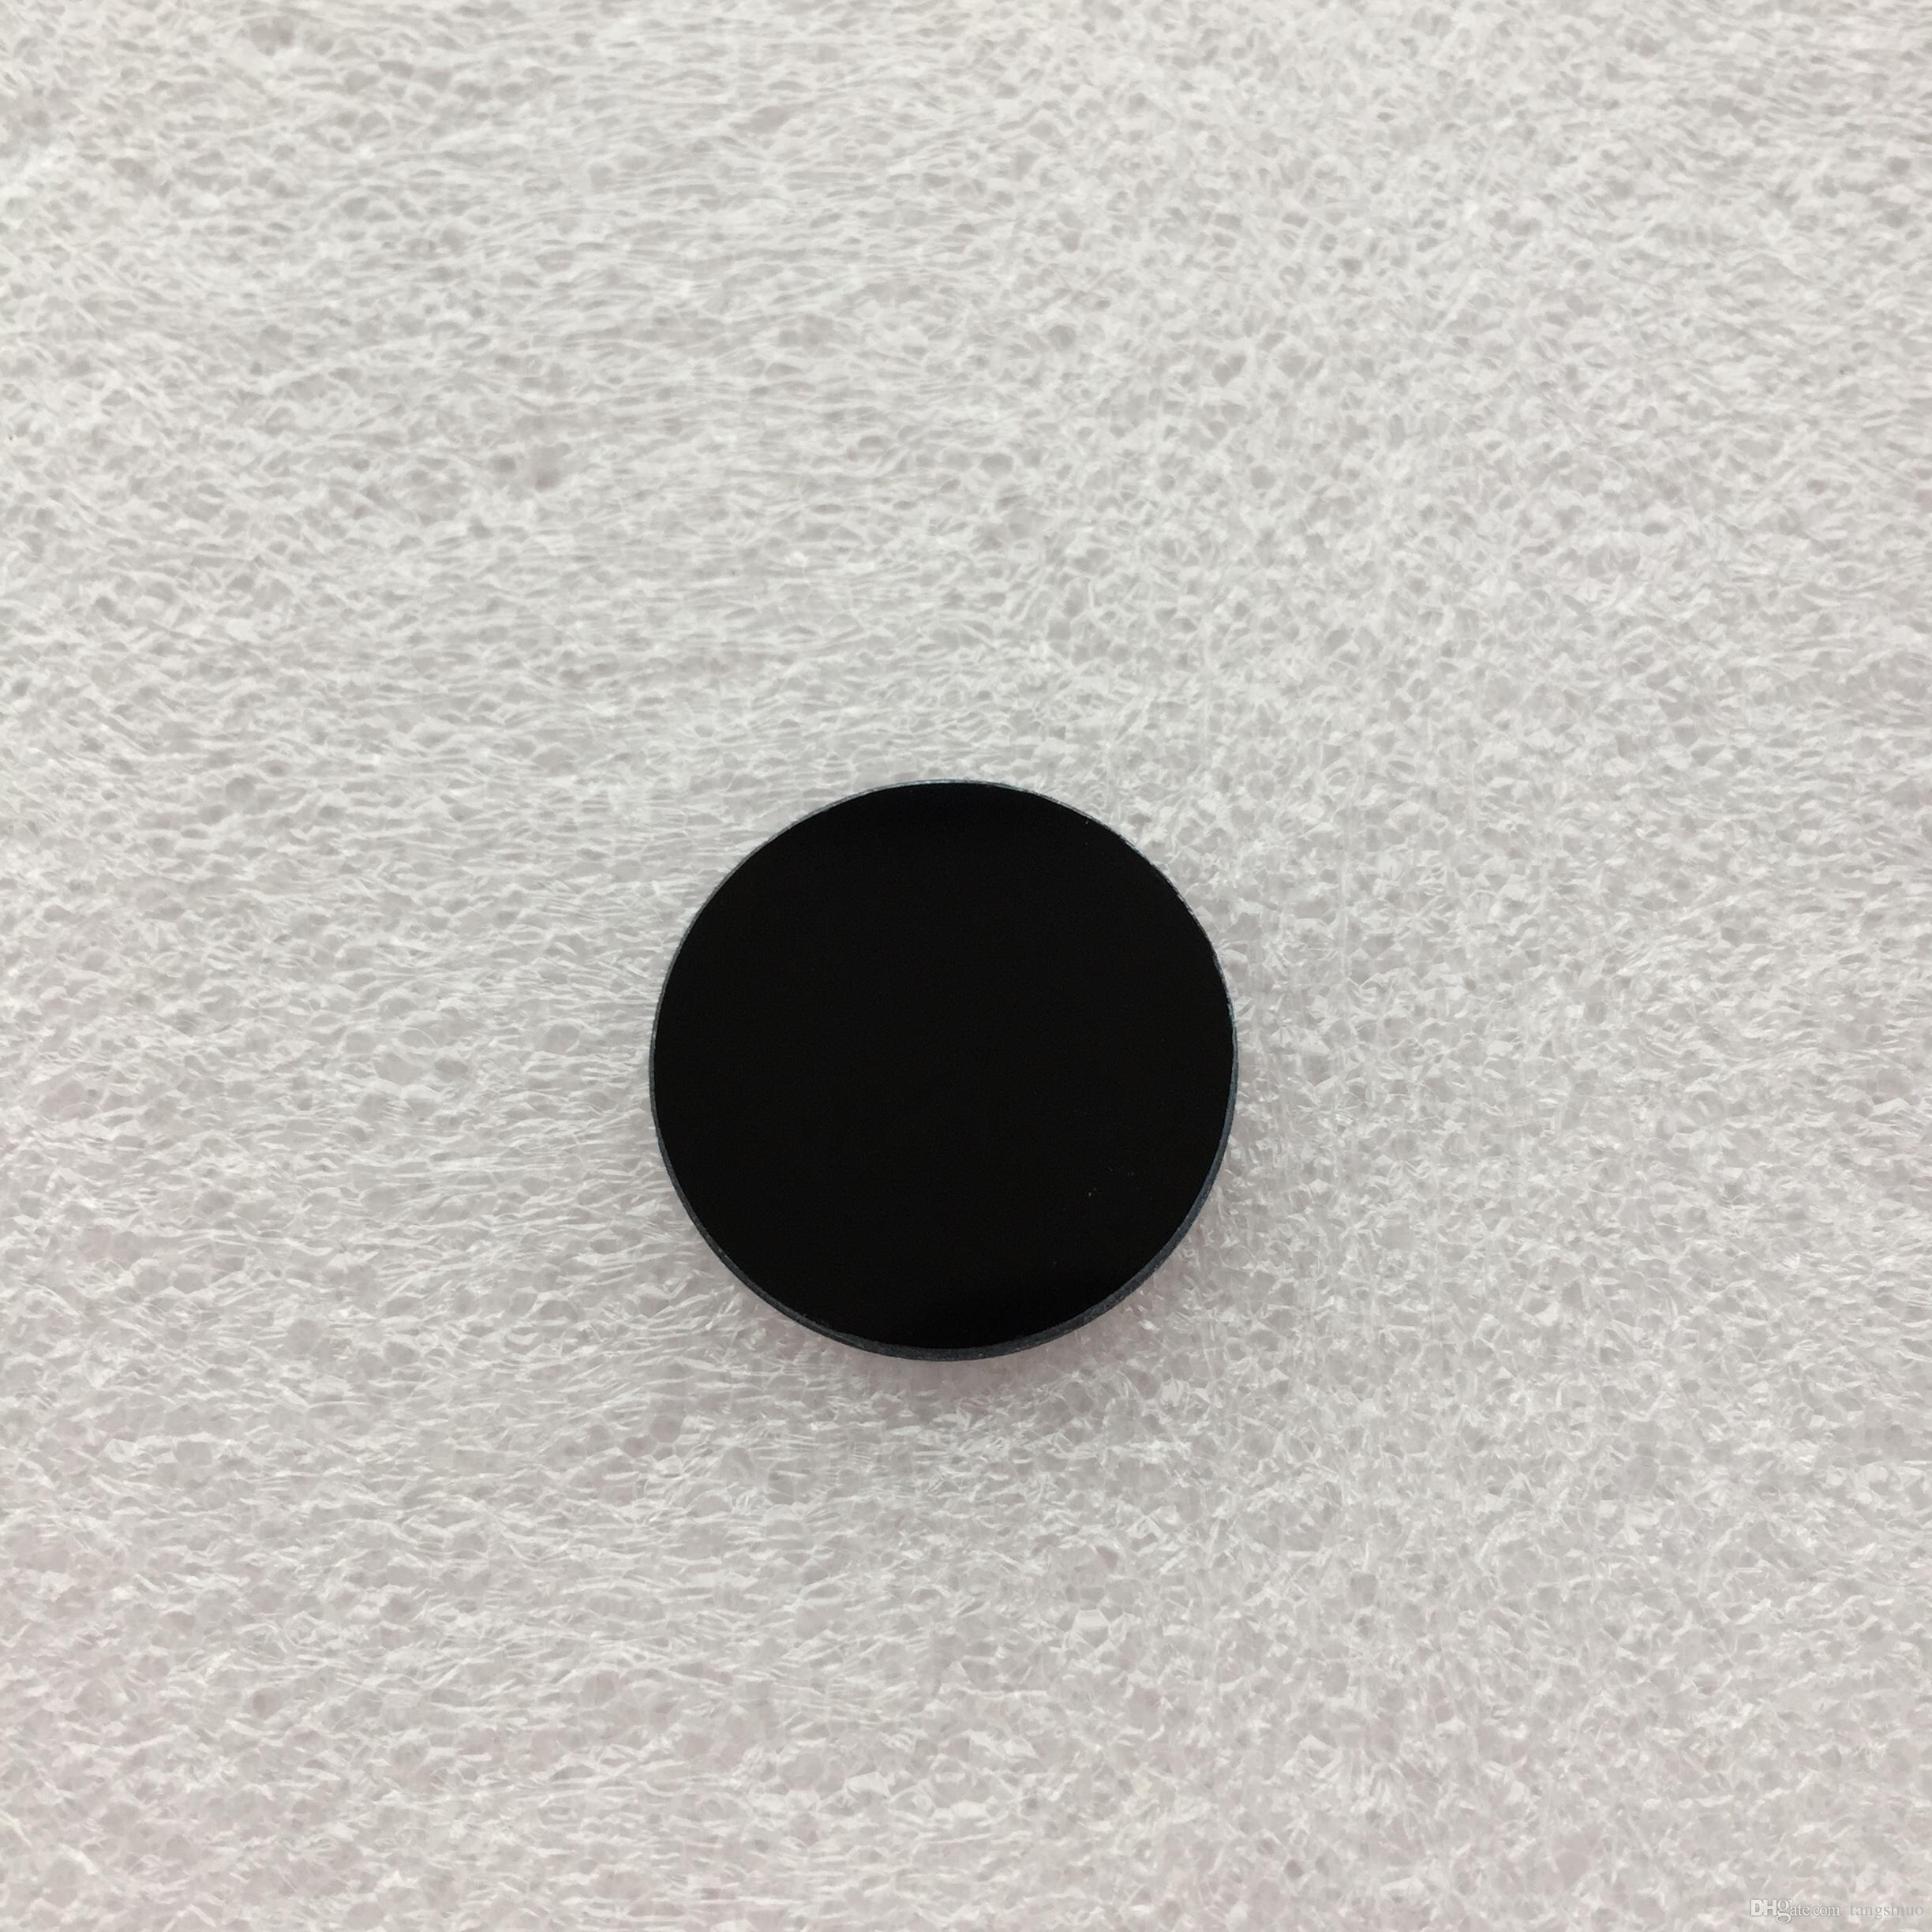 ZWB2 UG1 U-360 365nm Diameter 20 5mm Thickness 1 5mm UV Pass Filters  Optical Glass Filter Used for Flashlight